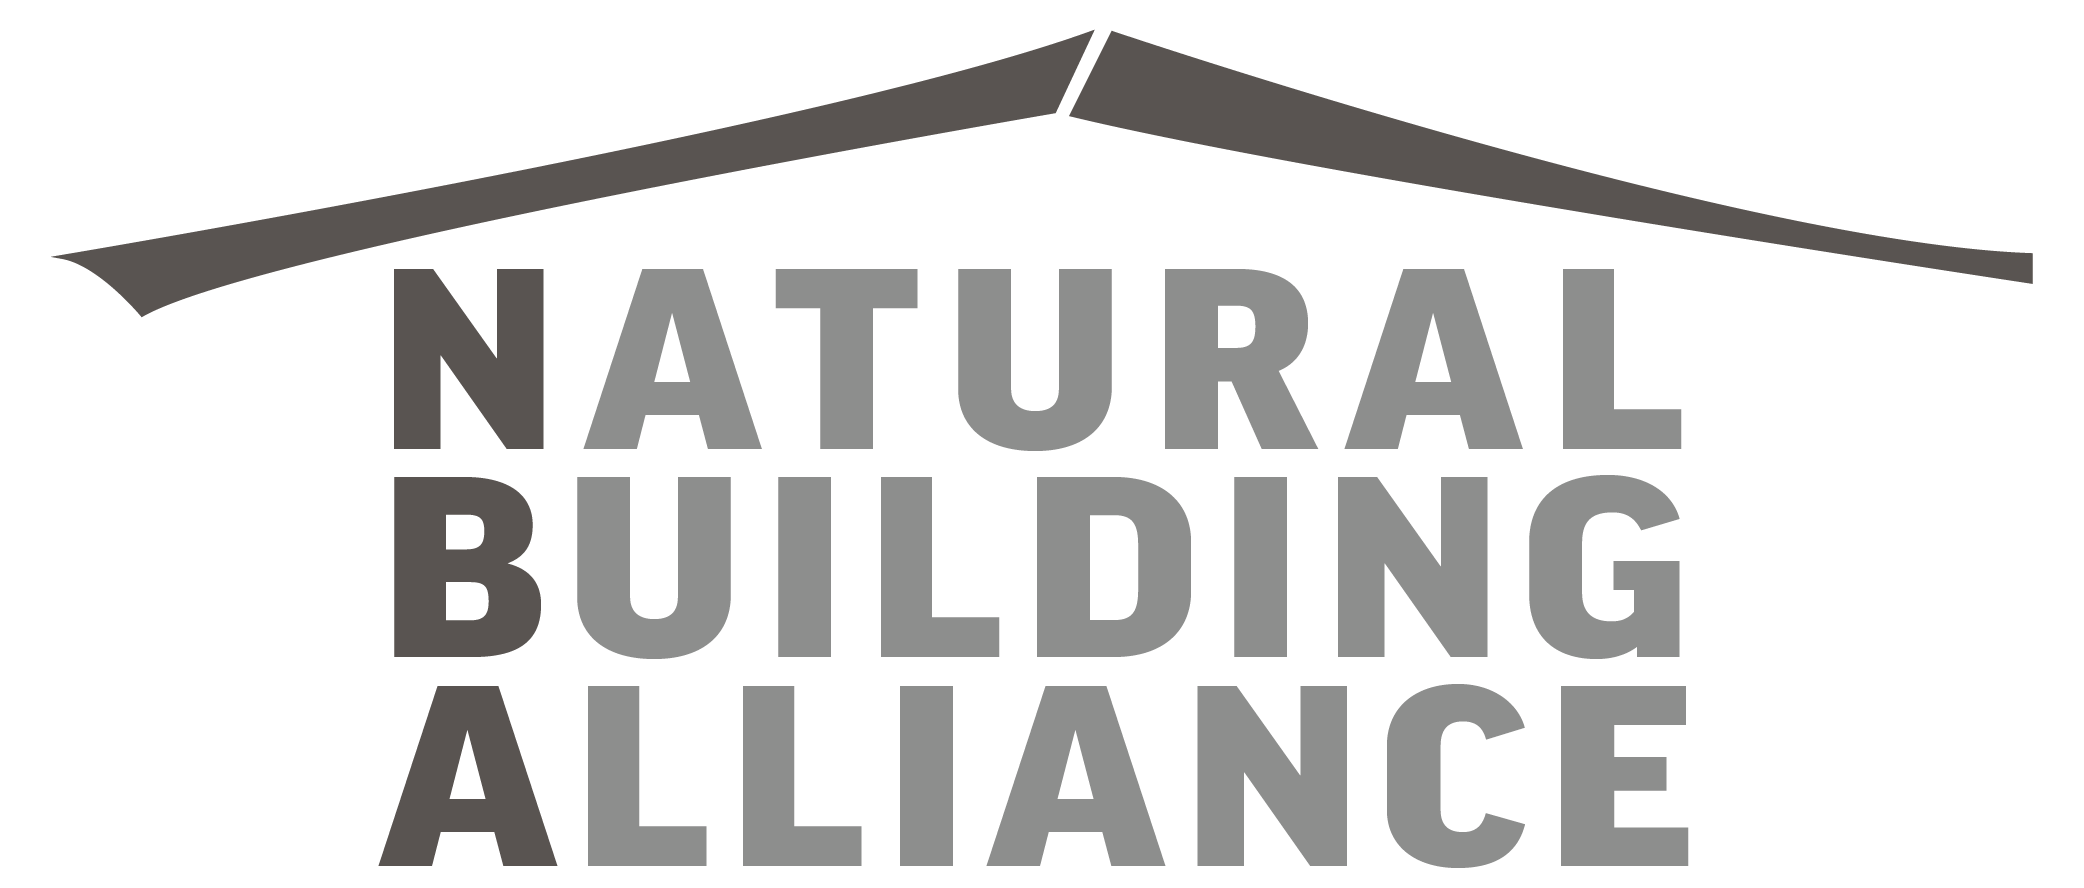 Natural Building Alliance